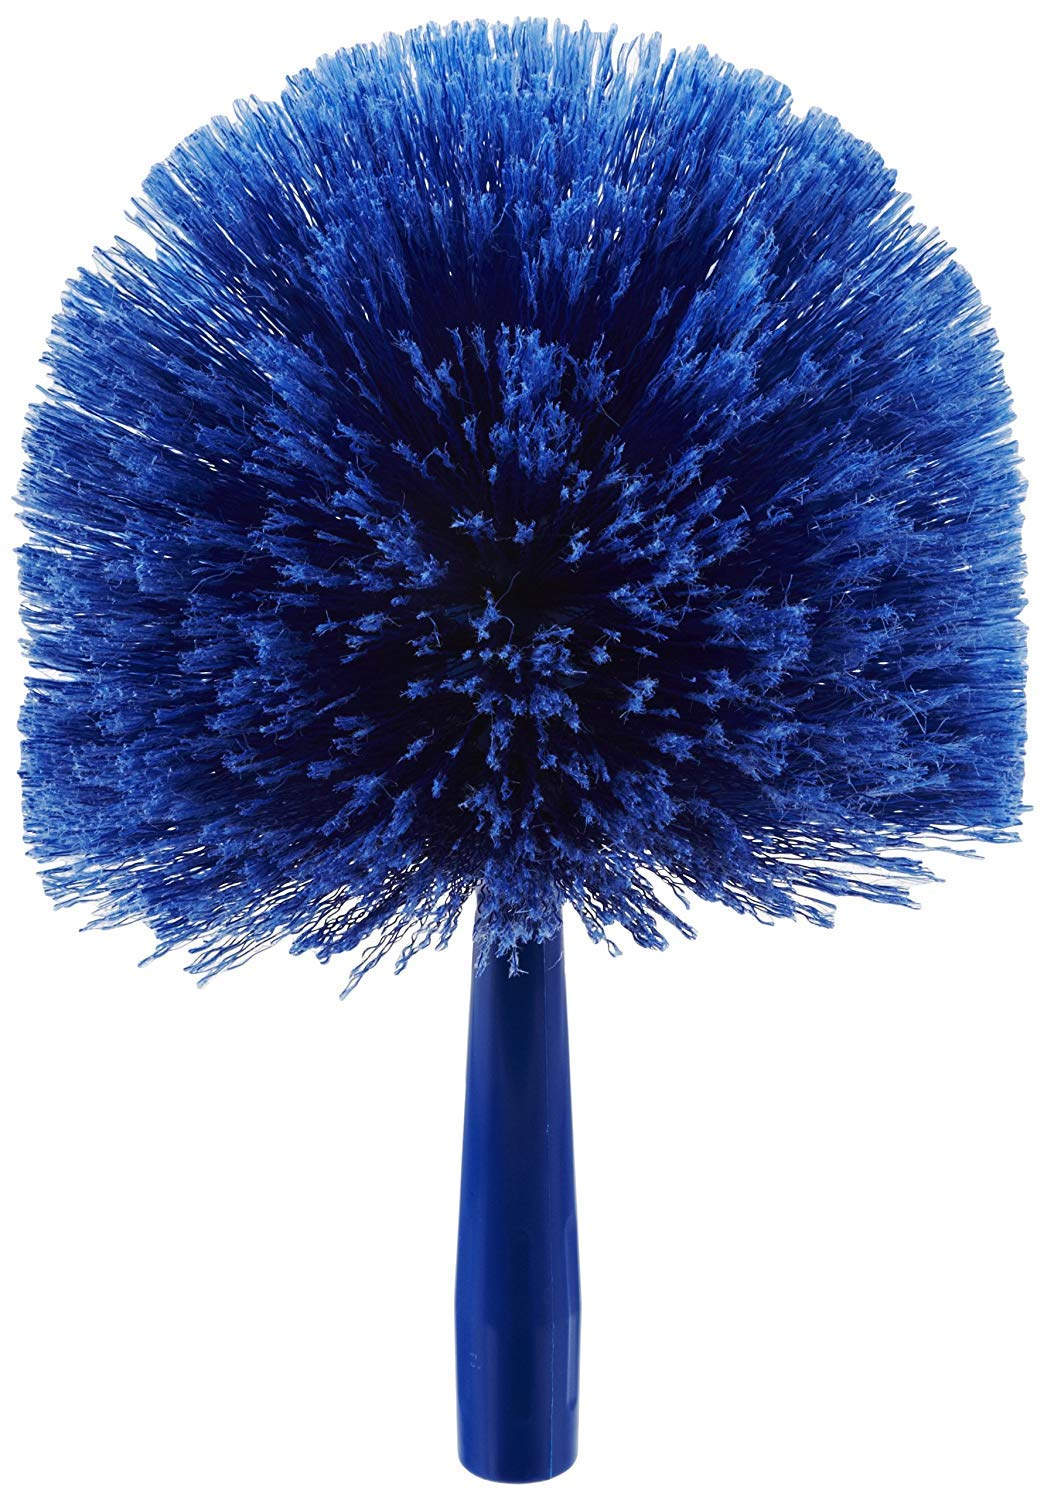 Carlisle 36340414 Flo-Pac Round Duster with Soft Flagged PVC Bristles, Blue - Lot of 12